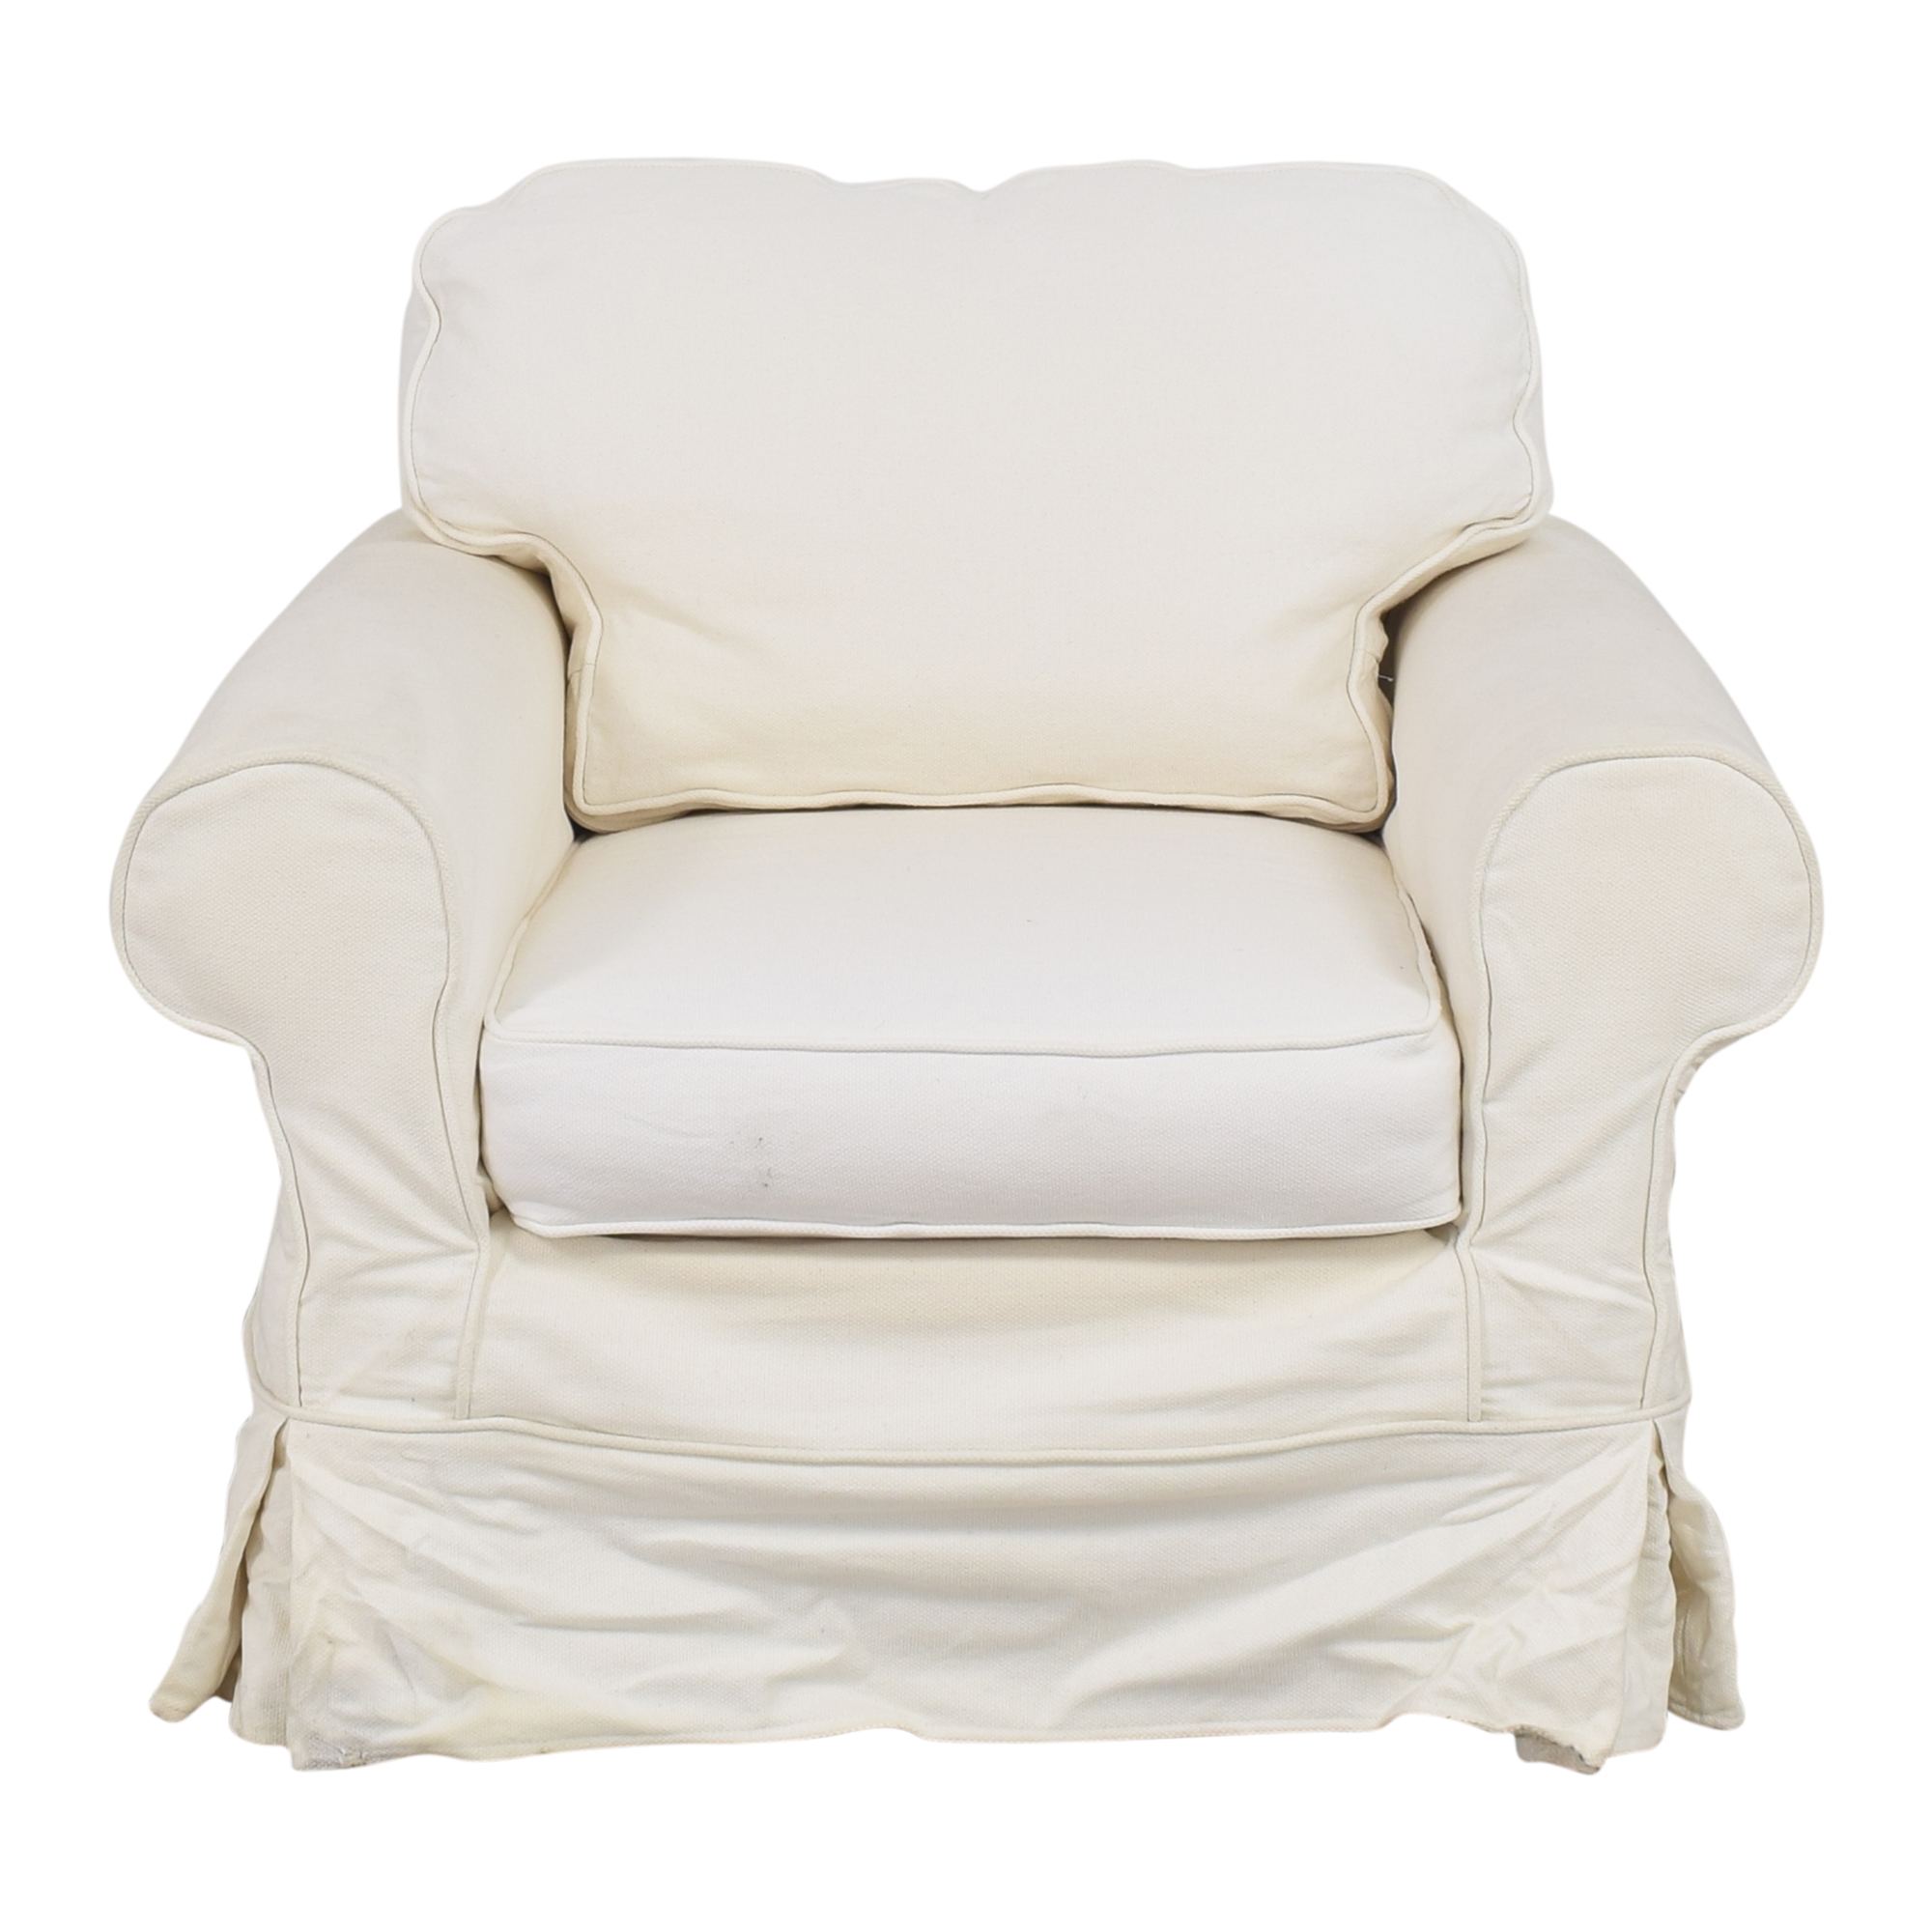 Mitchell Gold + Bob Williams Mitchell Gold + Bob Williams Slipcovered Arm Chair coupon